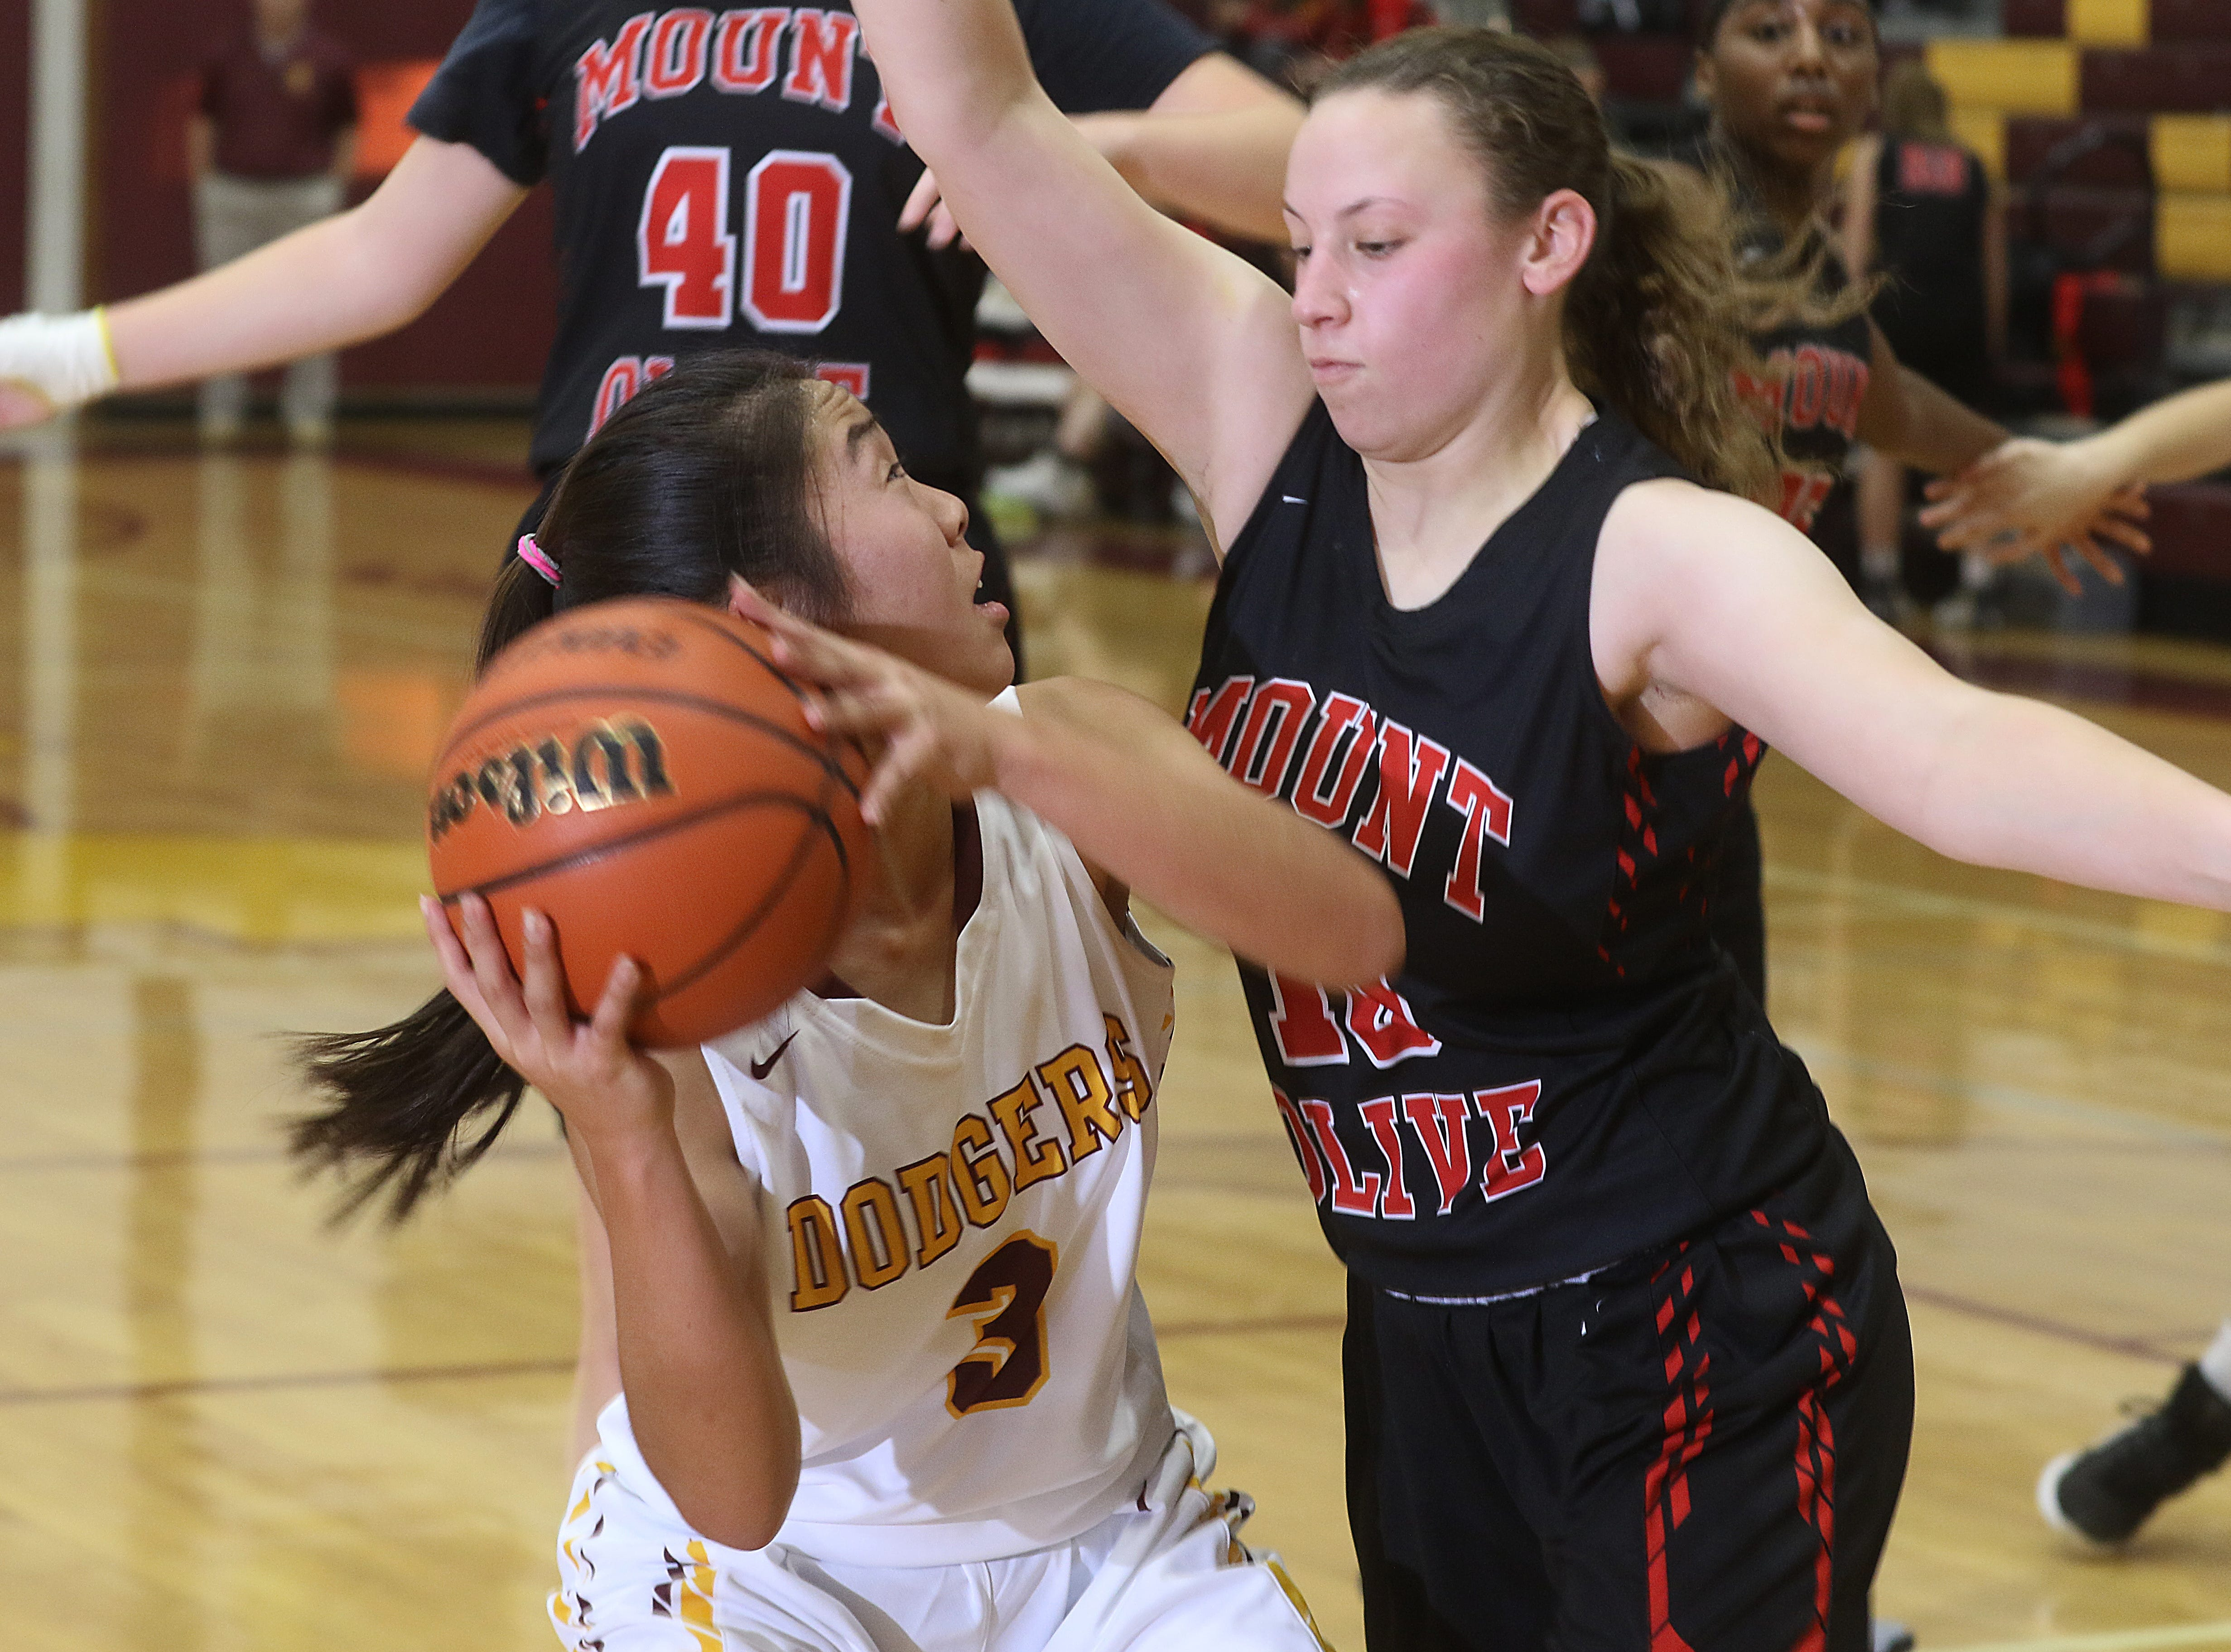 Sadie Kim of Madison is guarded by Gabby Grillo of Mount Olive in the first half.